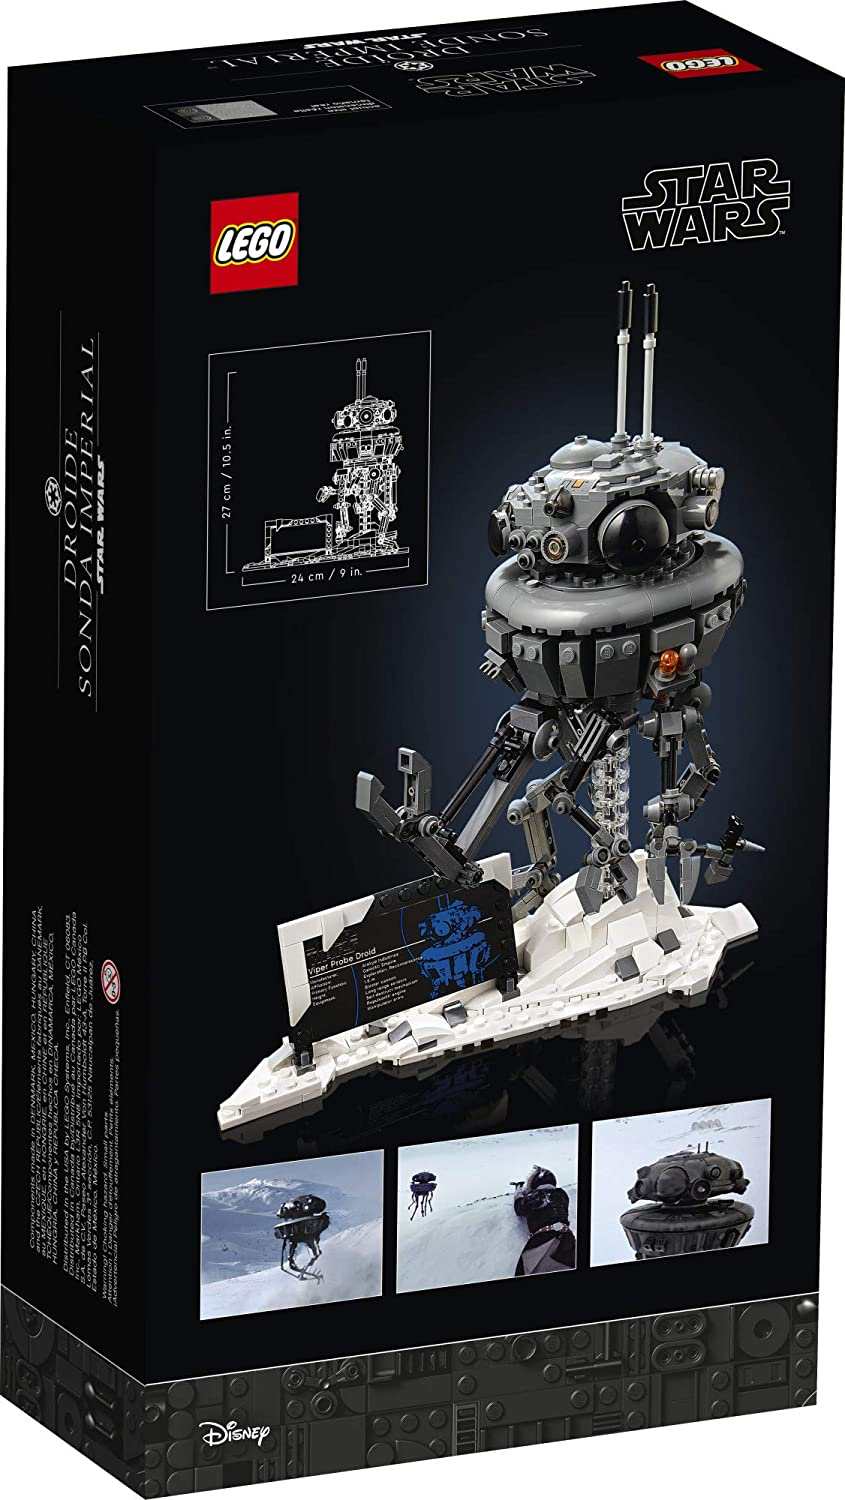 SW Imperial Probe Droid Lego Set 2